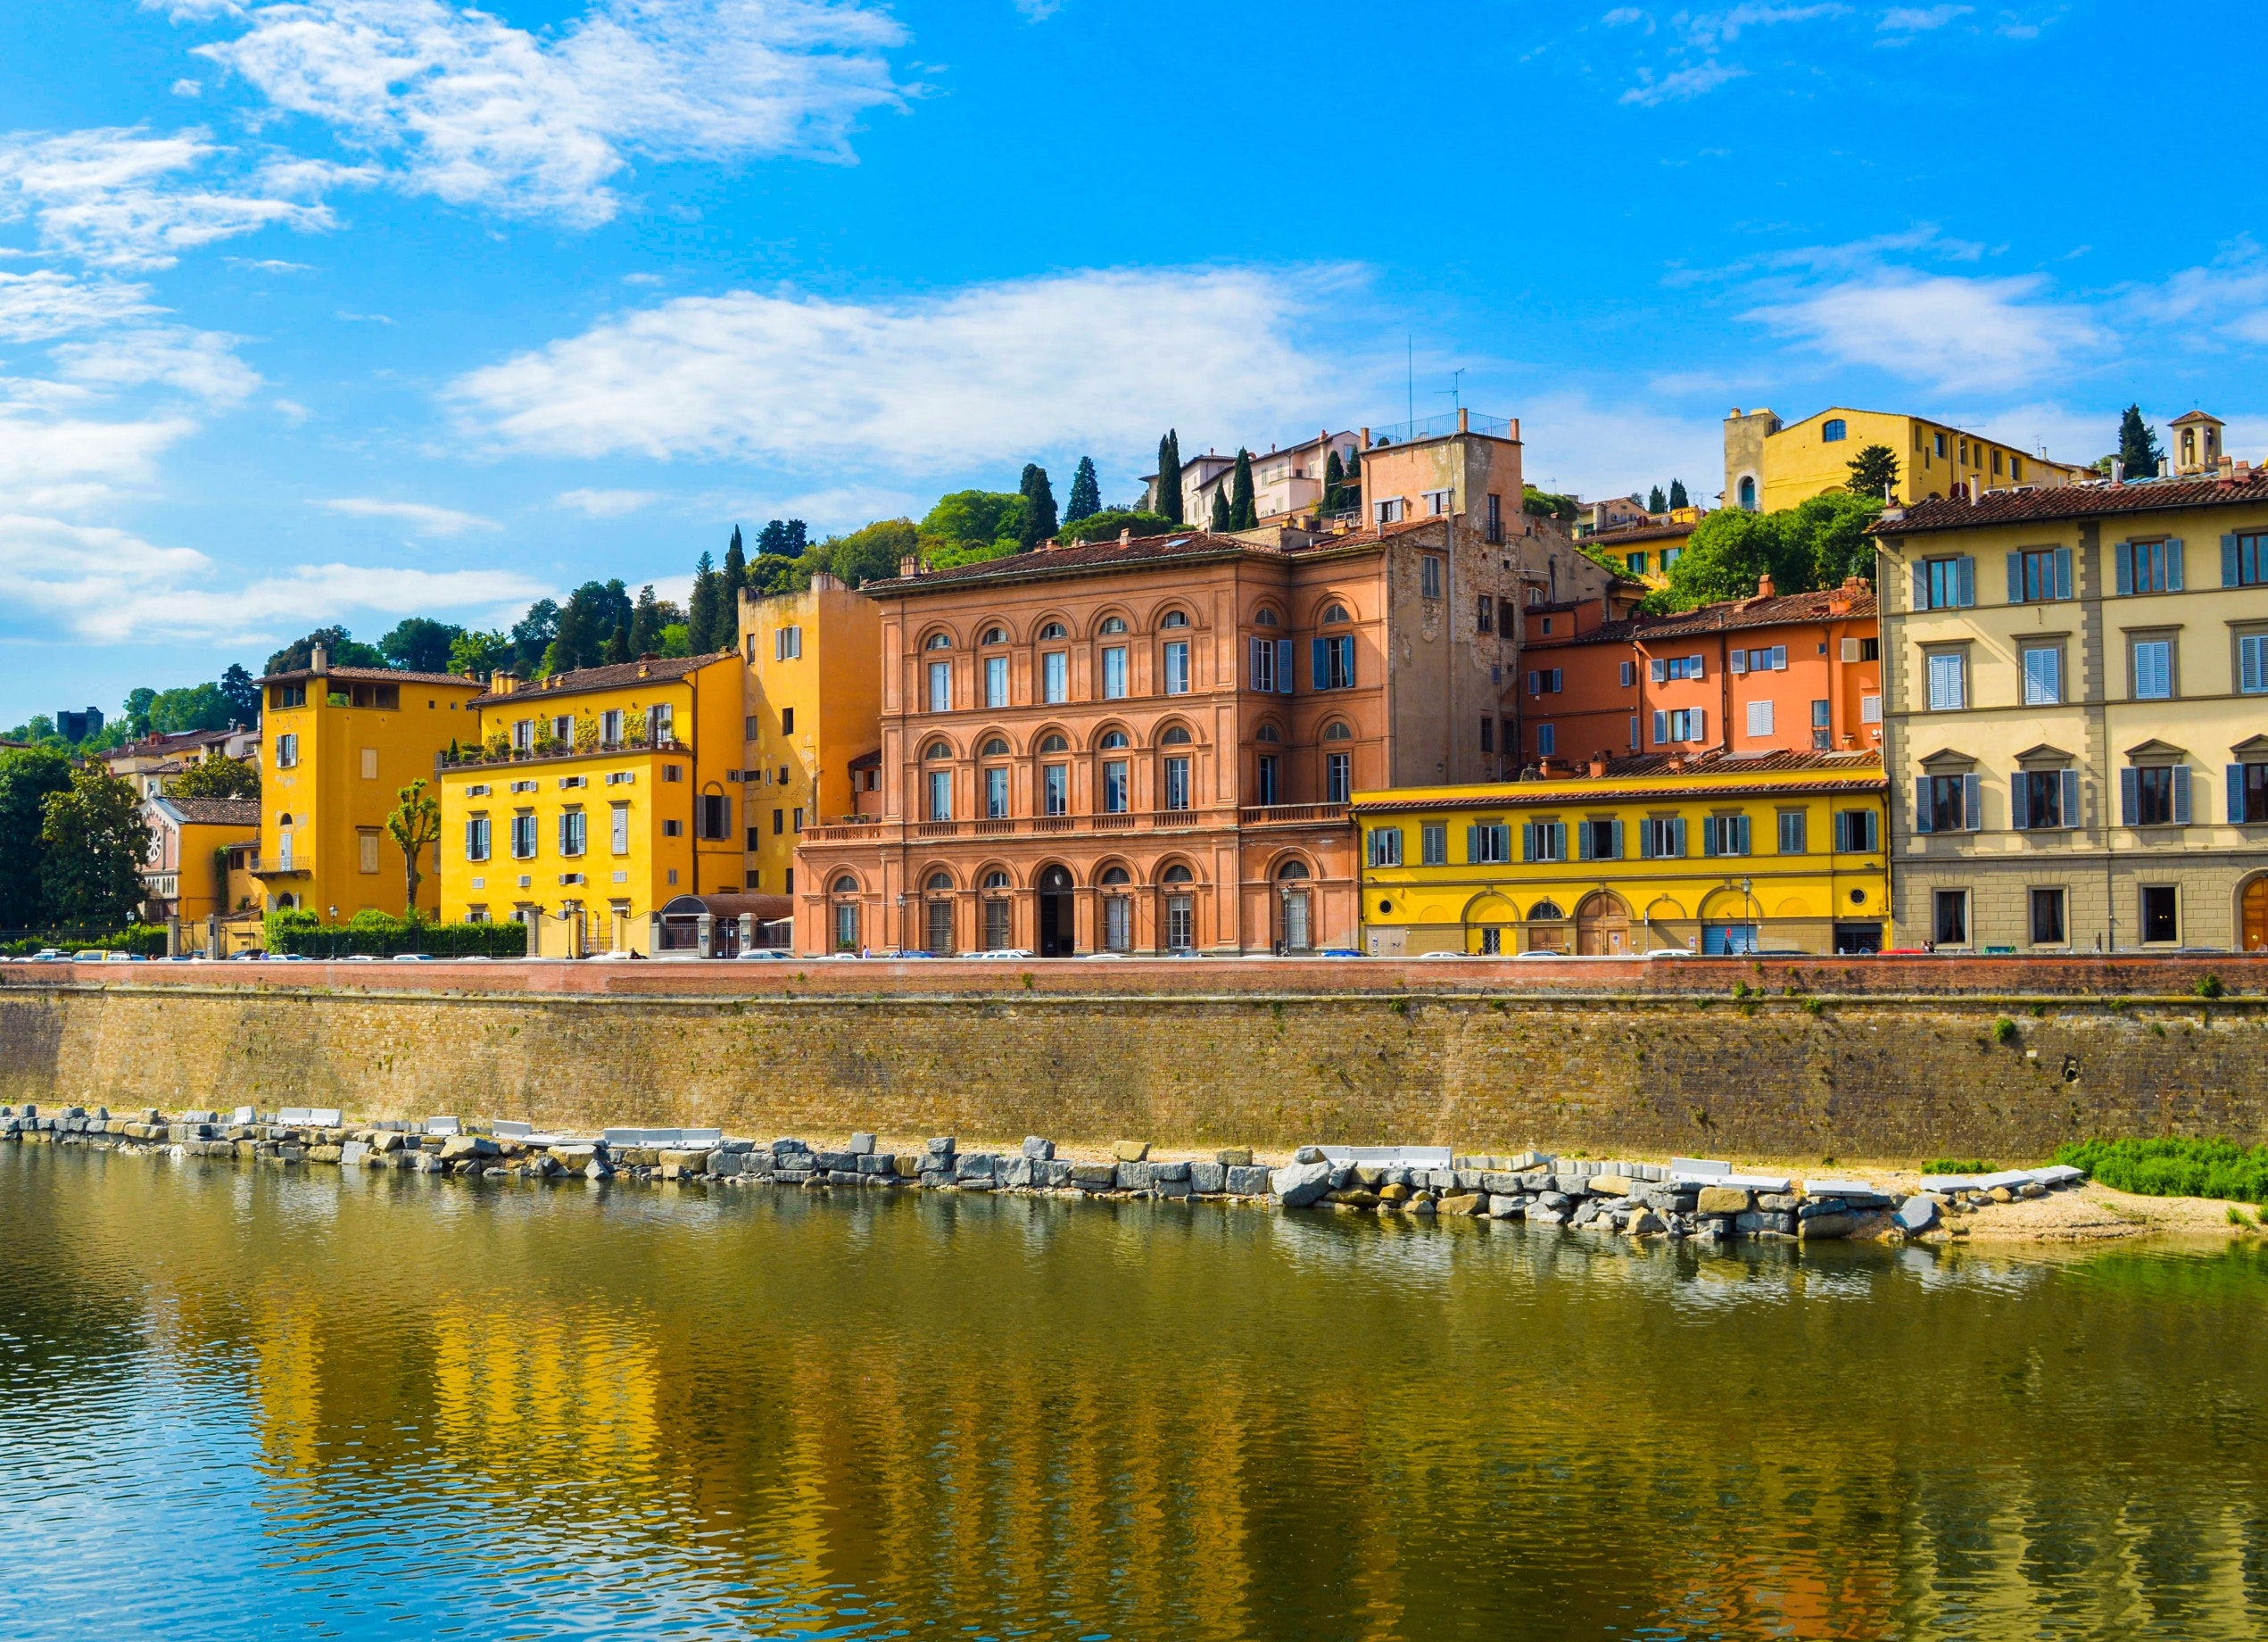 Yellow and Orange Buildings Near River, Architecture, Reflections, Urban, Trees, HQ Photo